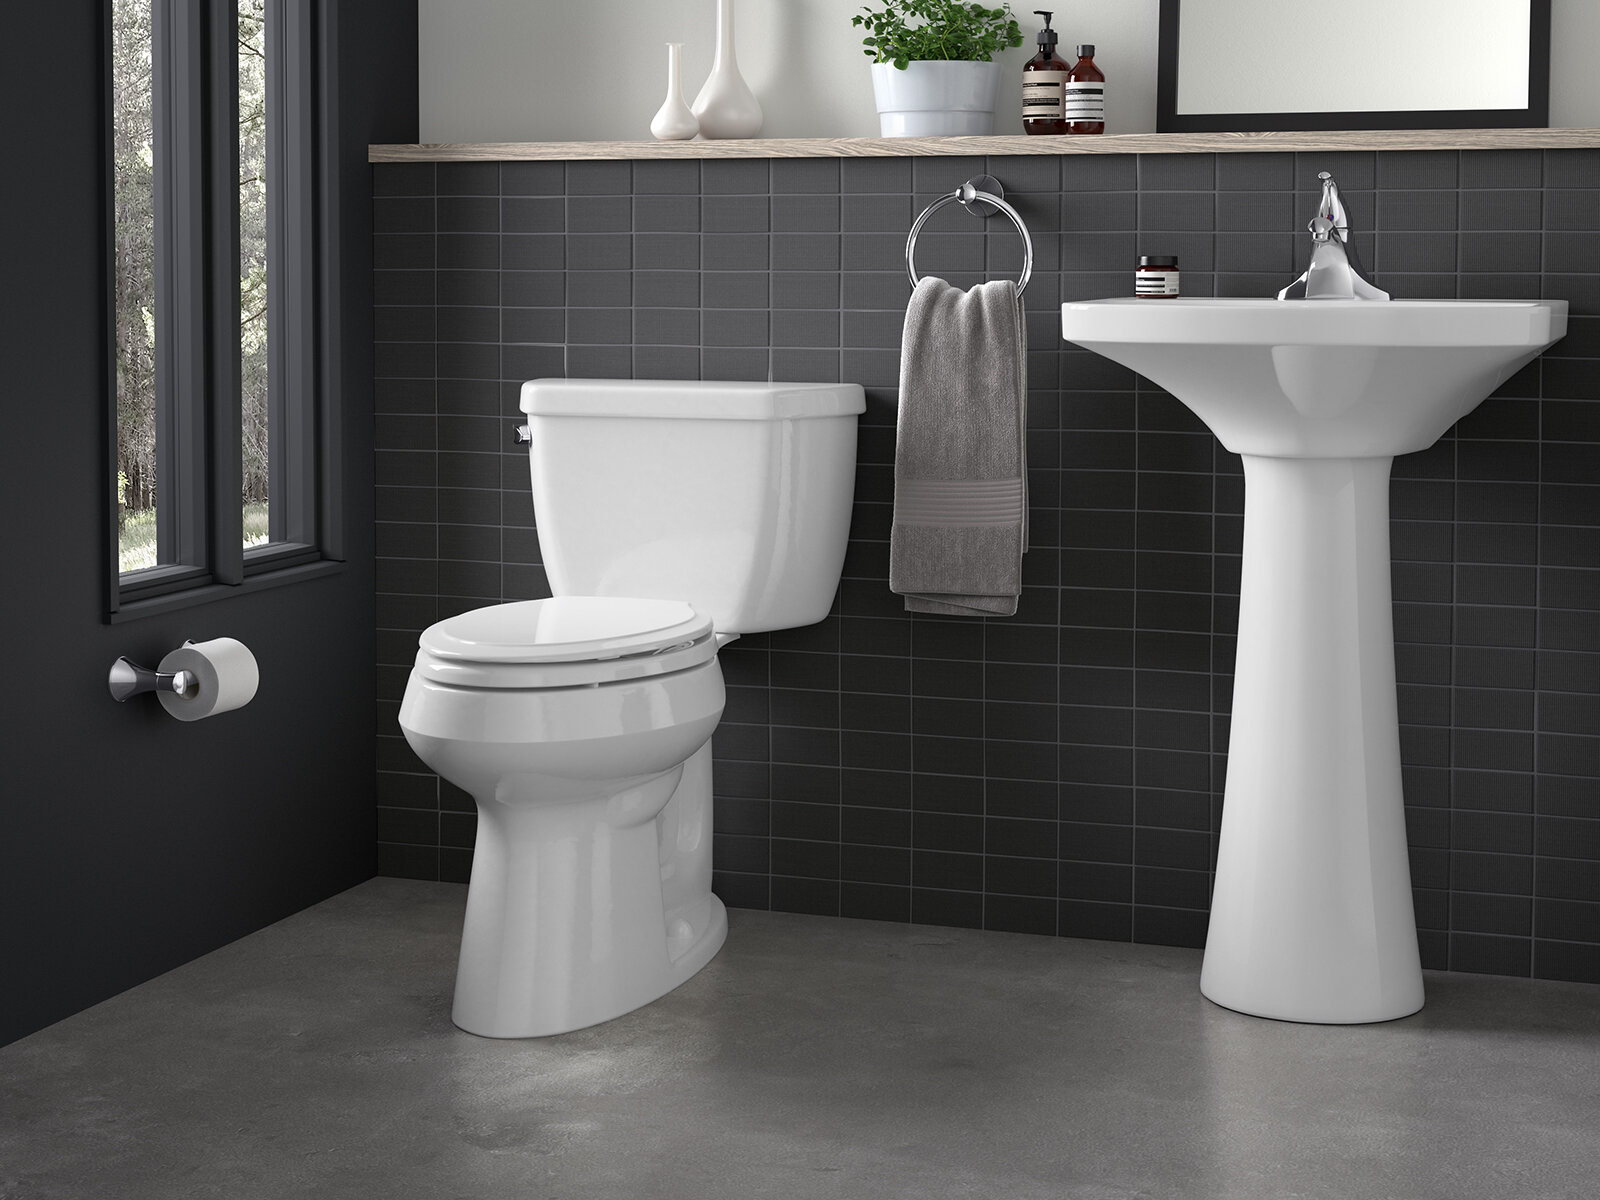 K 3658 0 7 96 Kohler Highline 1 28 Gpf Water Efficient Elongated Two Piece Toilet Seat Not Included Reviews Wayfair